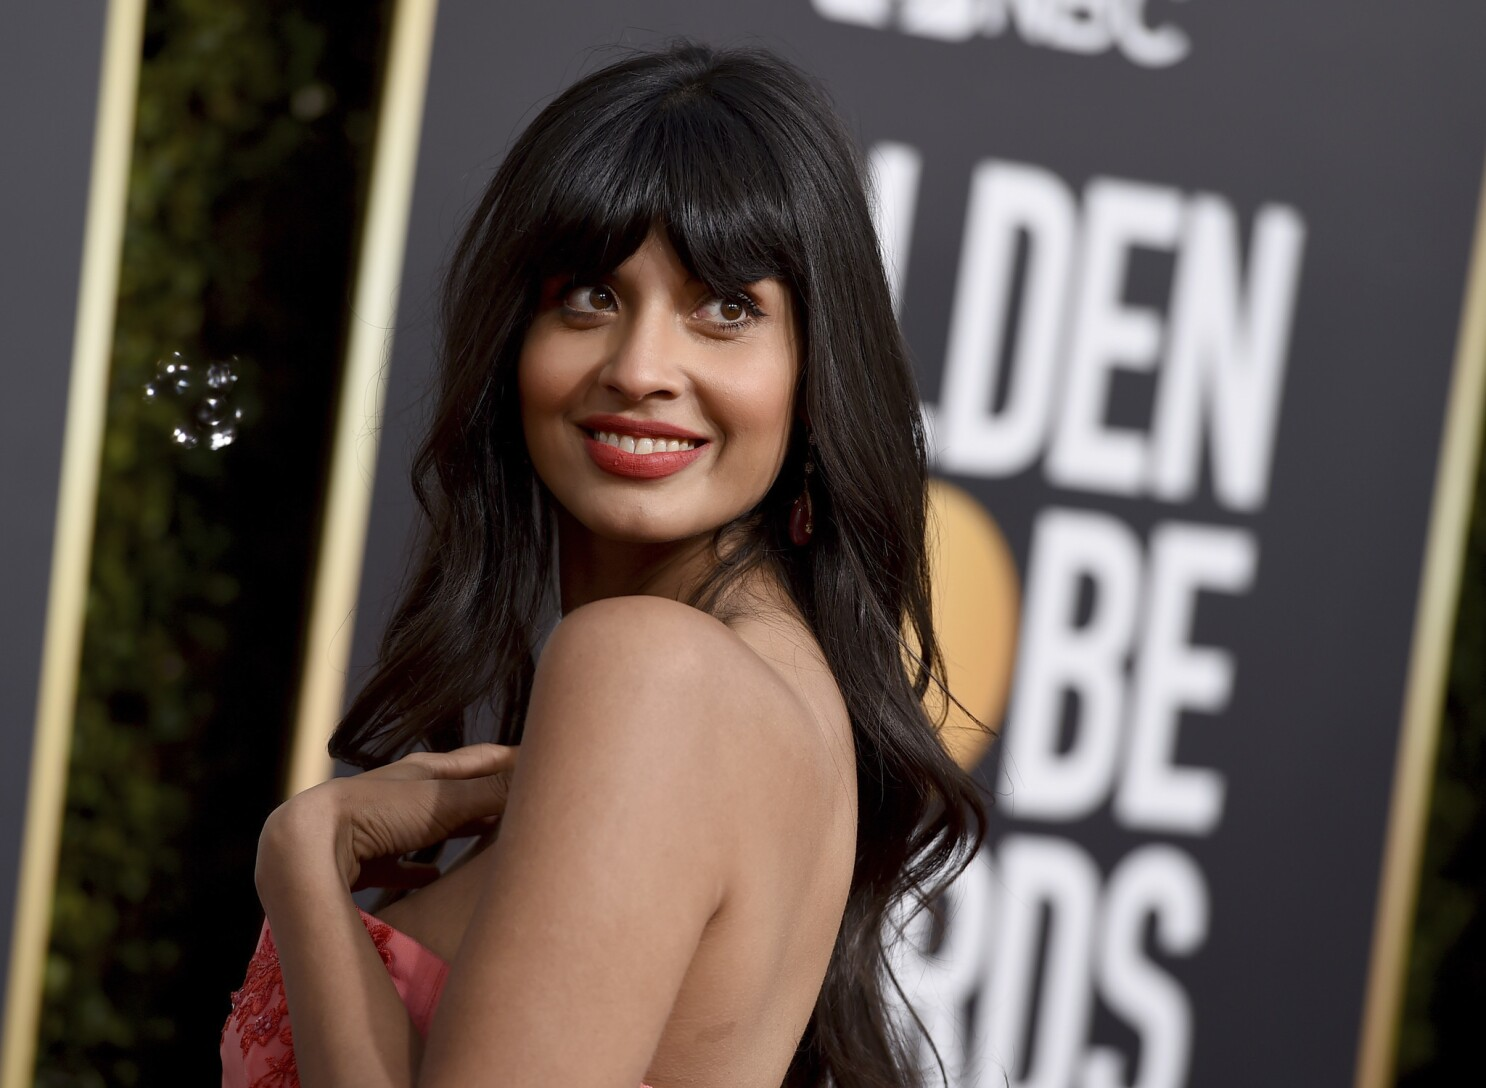 Jameela Jamil calls out British media over Meghan Markle: 'Just say you hate her because she's black'